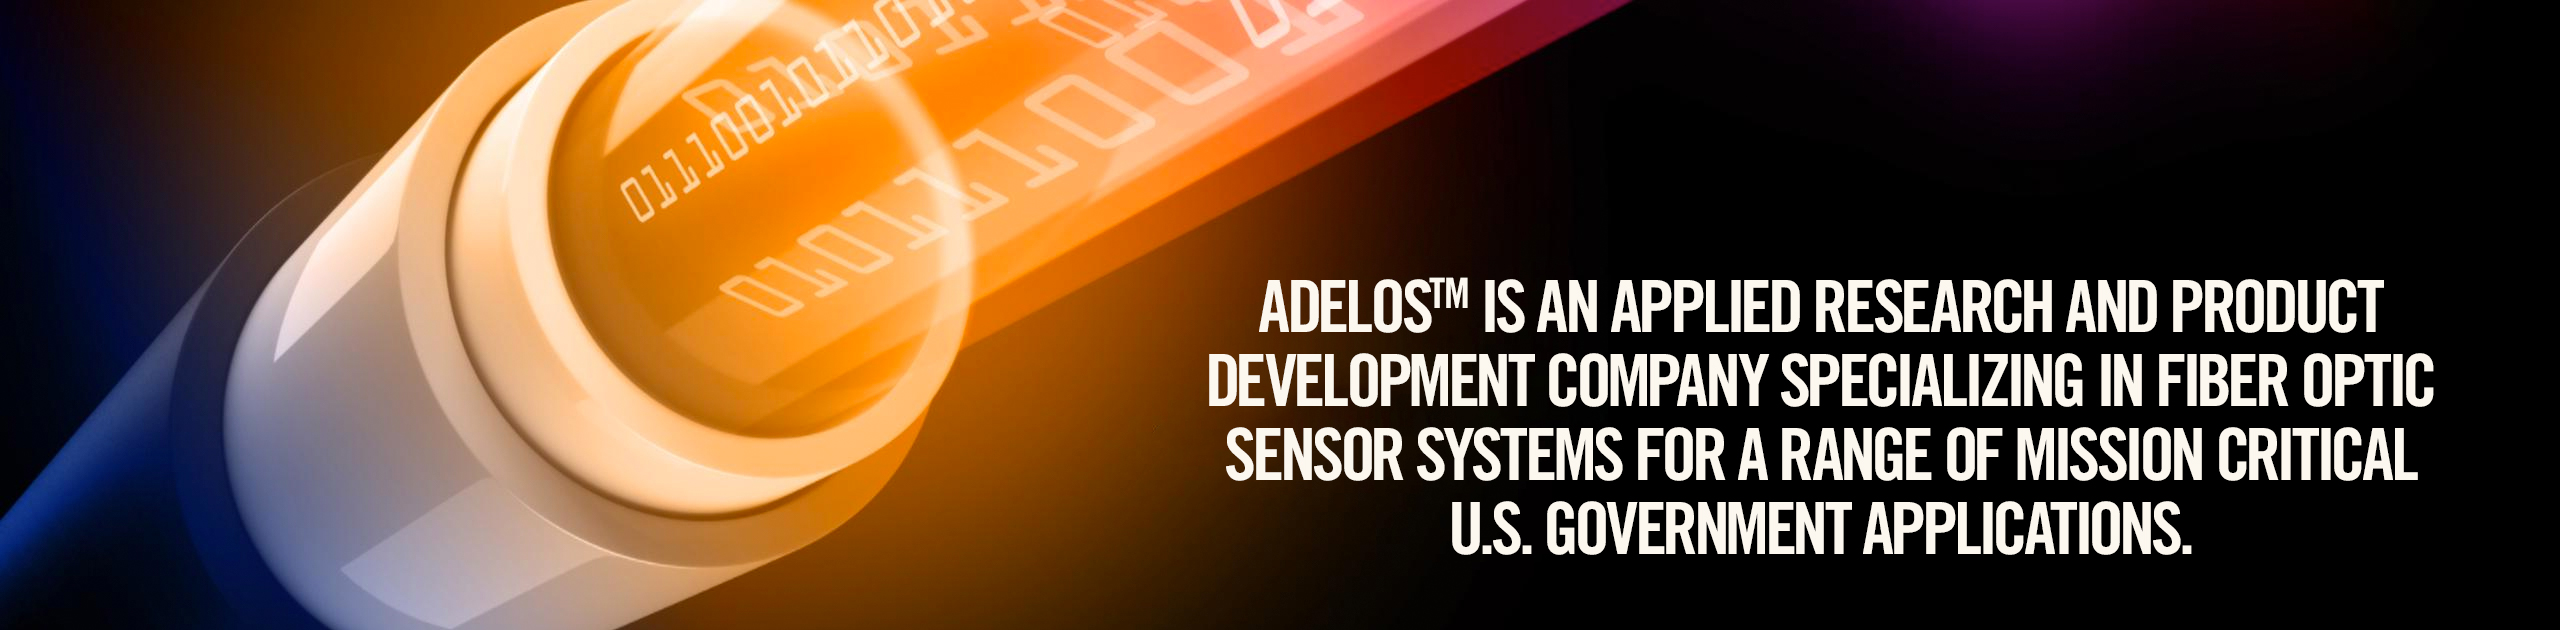 AdelosTM is an applied Research and Product development company specializing in fiber optic sensor systems for a range of mission critical U.S. Government Applications.